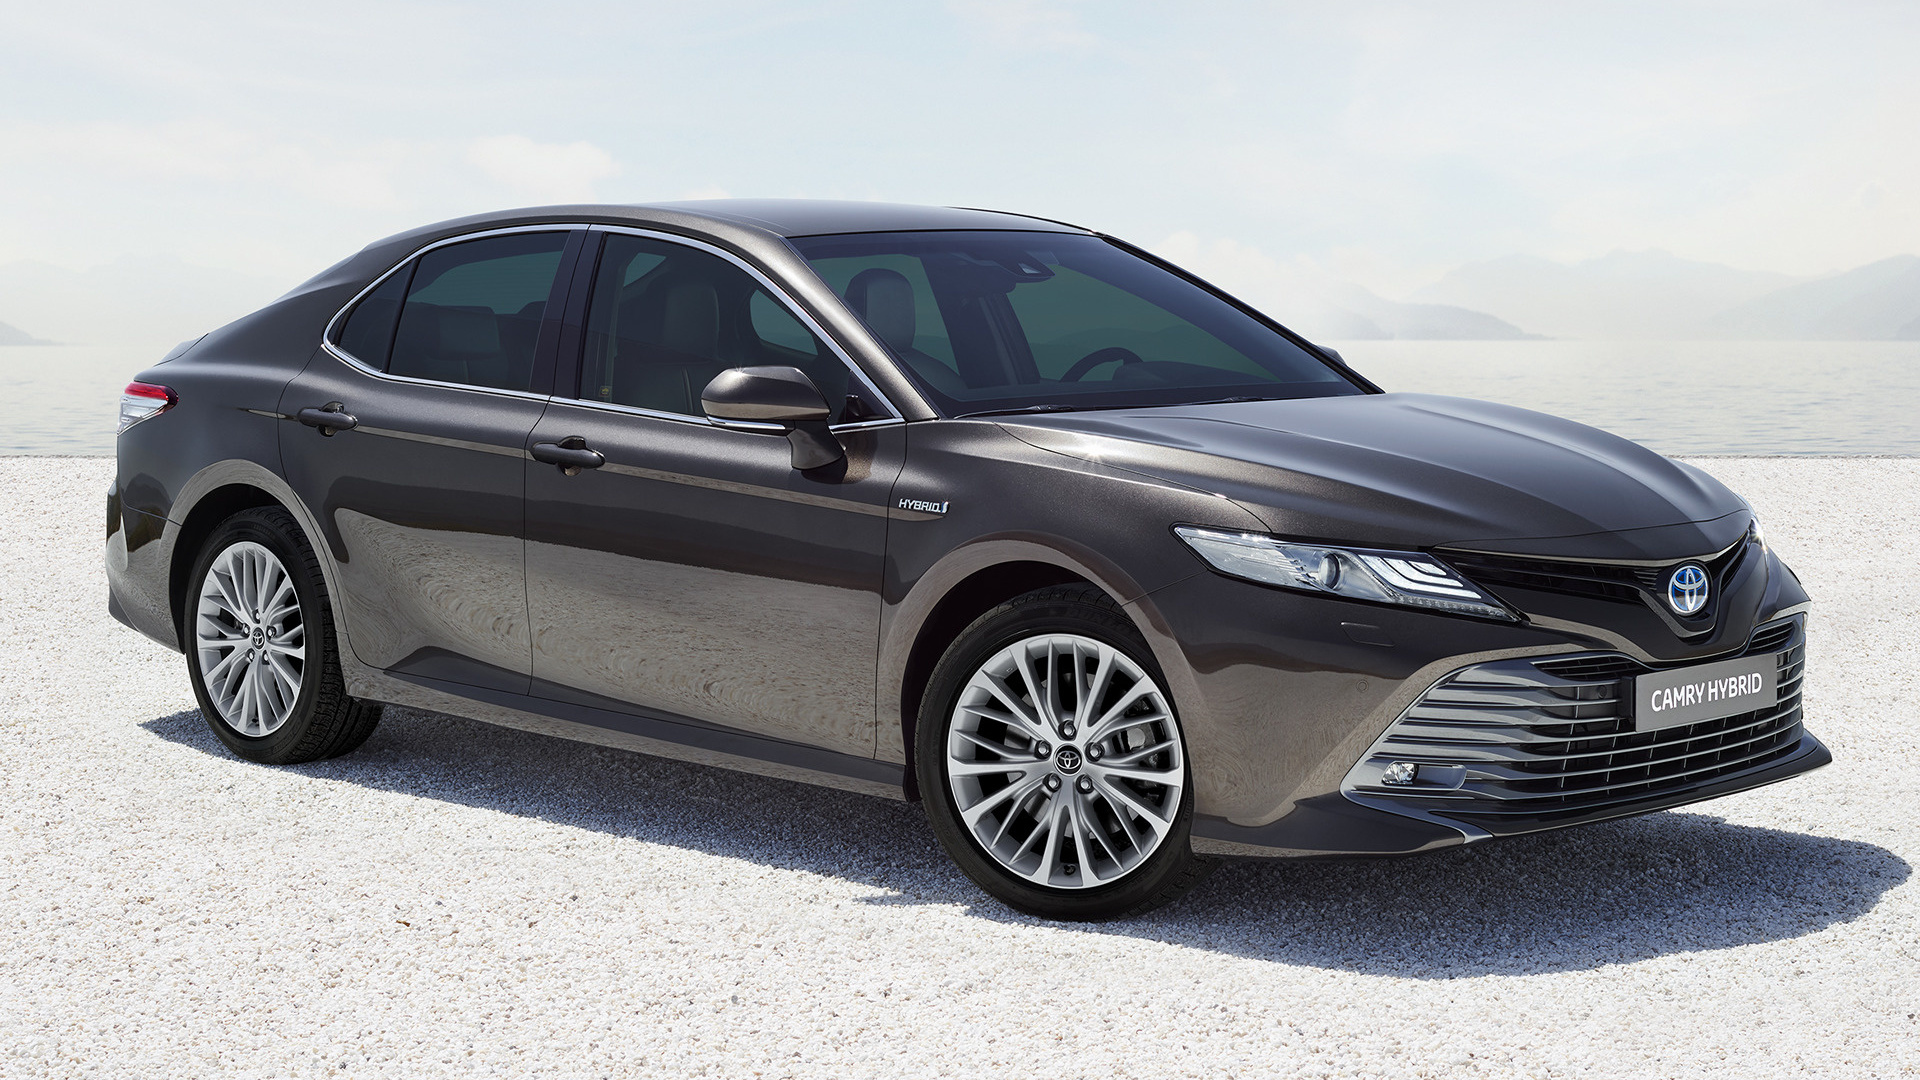 2019 Toyota Camry Hybrid Eu Wallpapers And Hd Images